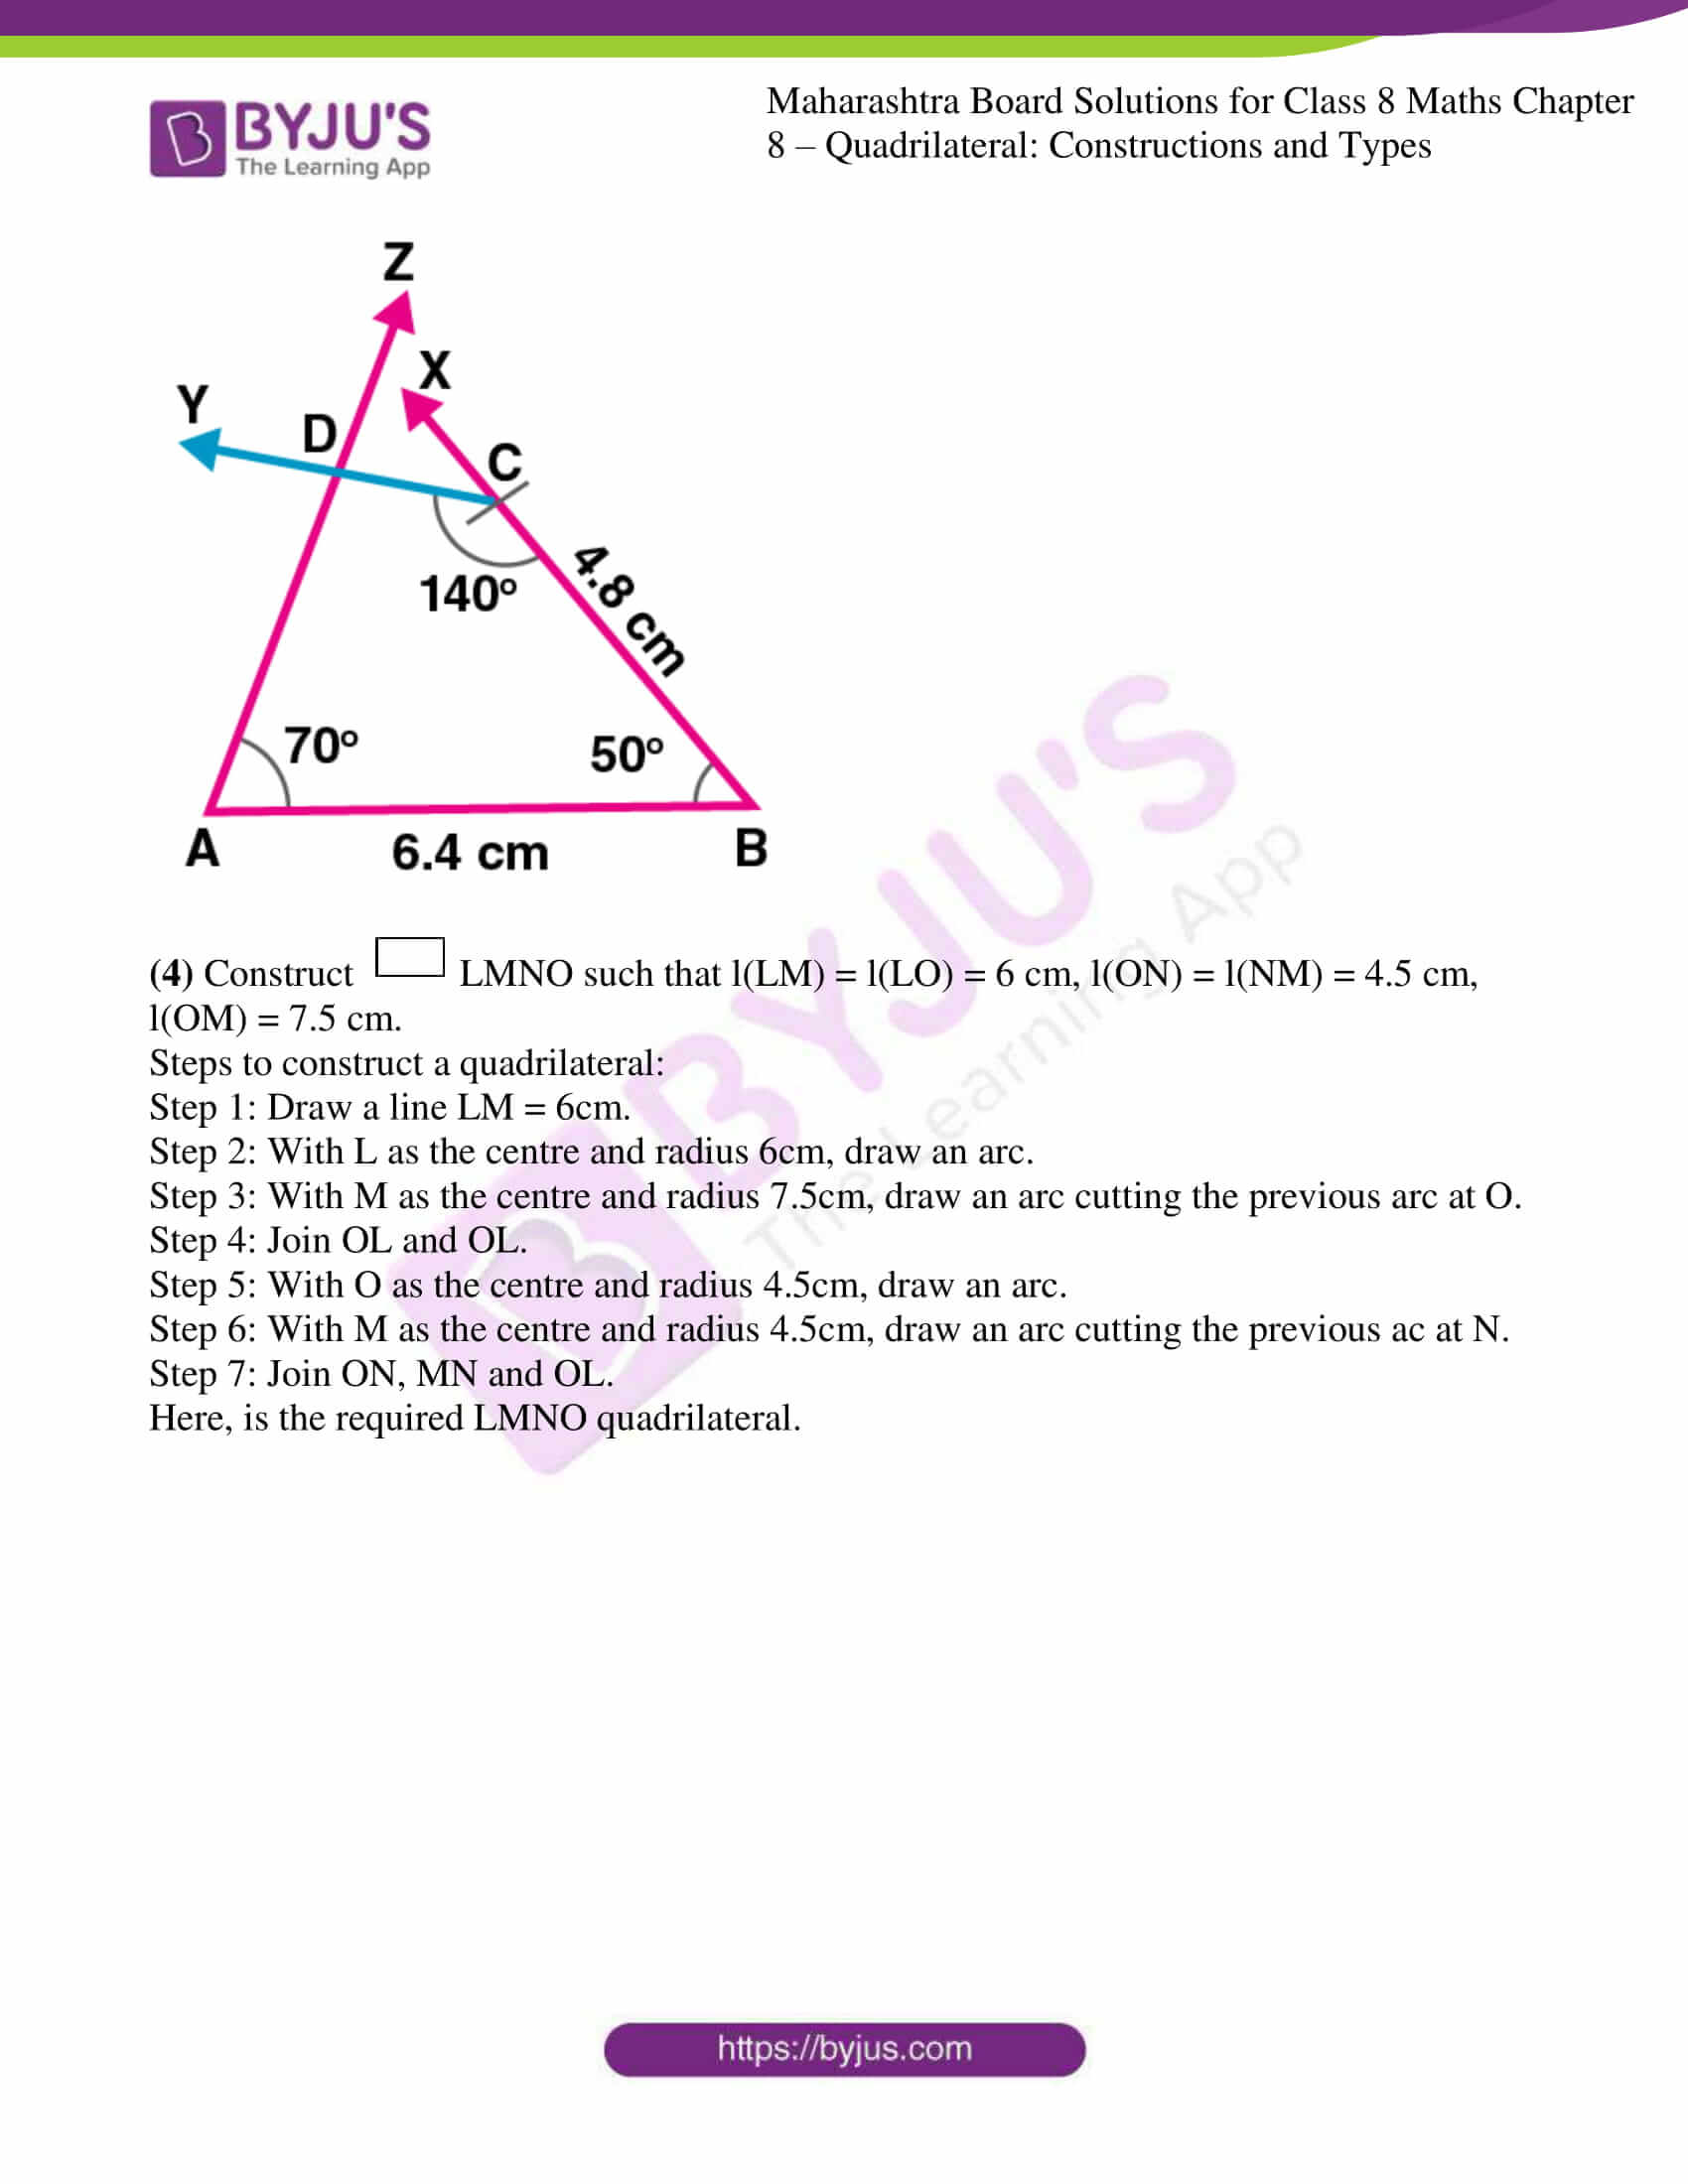 msbshse sol for class 8 maths chapter 8 04